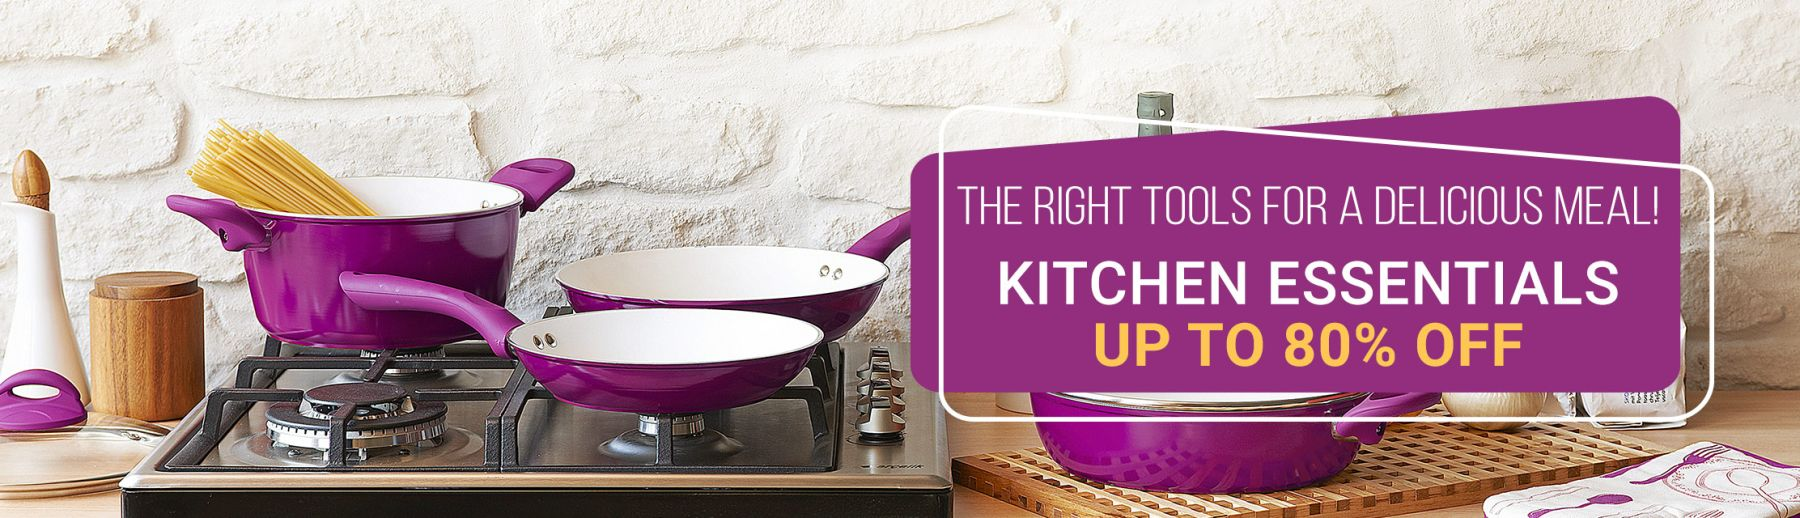 buy online 684d2 beeb8 Kitchenware & Household Items Online at Amazing Price in India